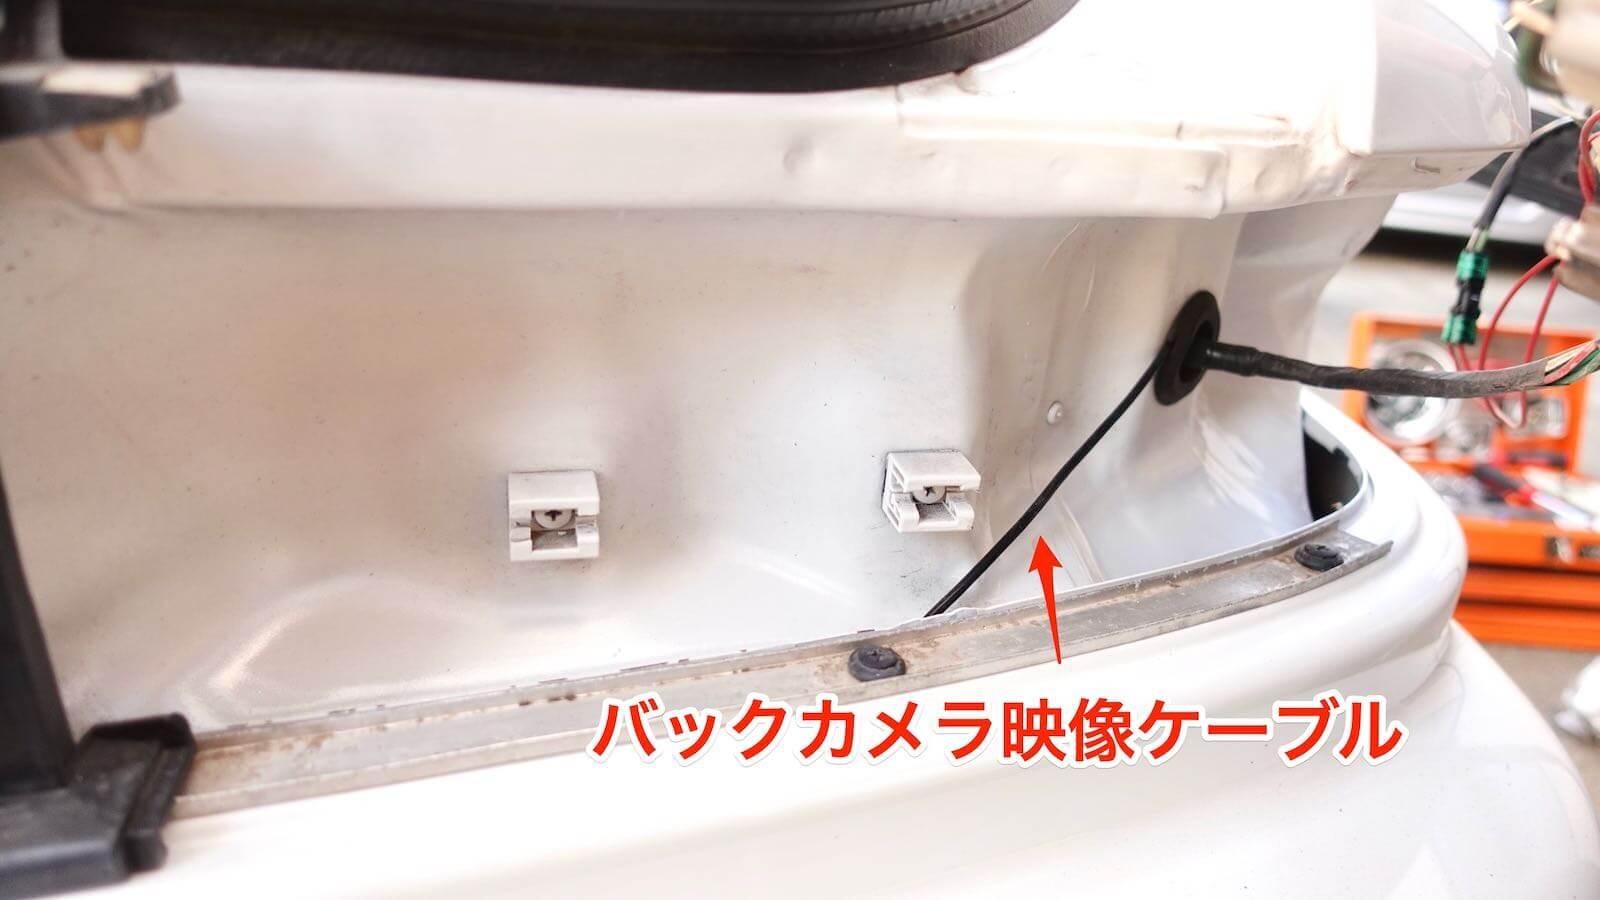 MR2 back video cable pull-in position